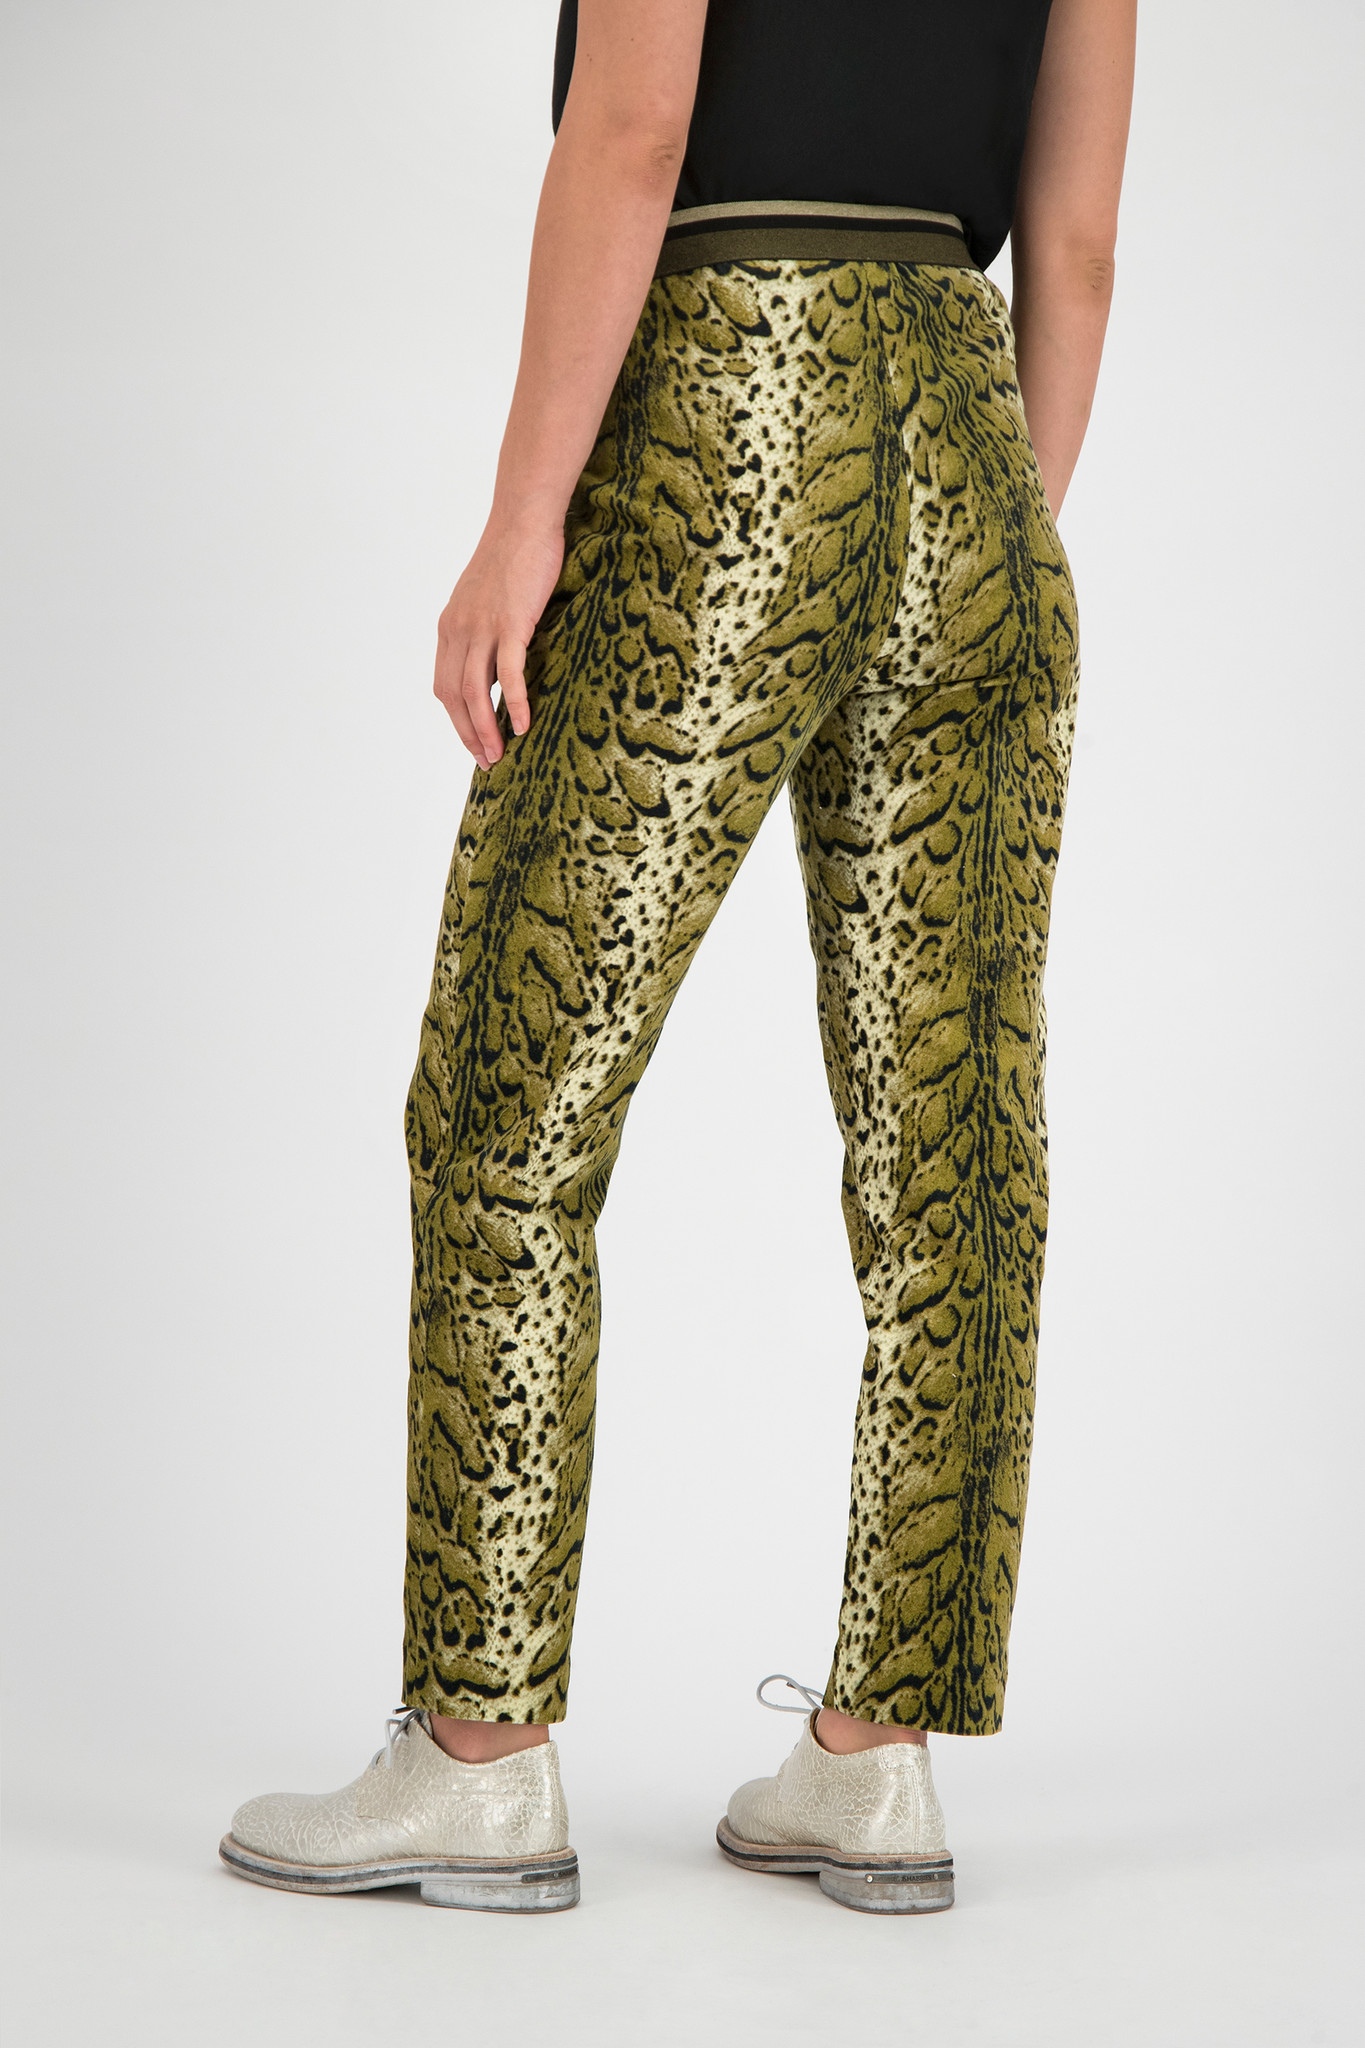 SYLVER Leopard Trousers - Country